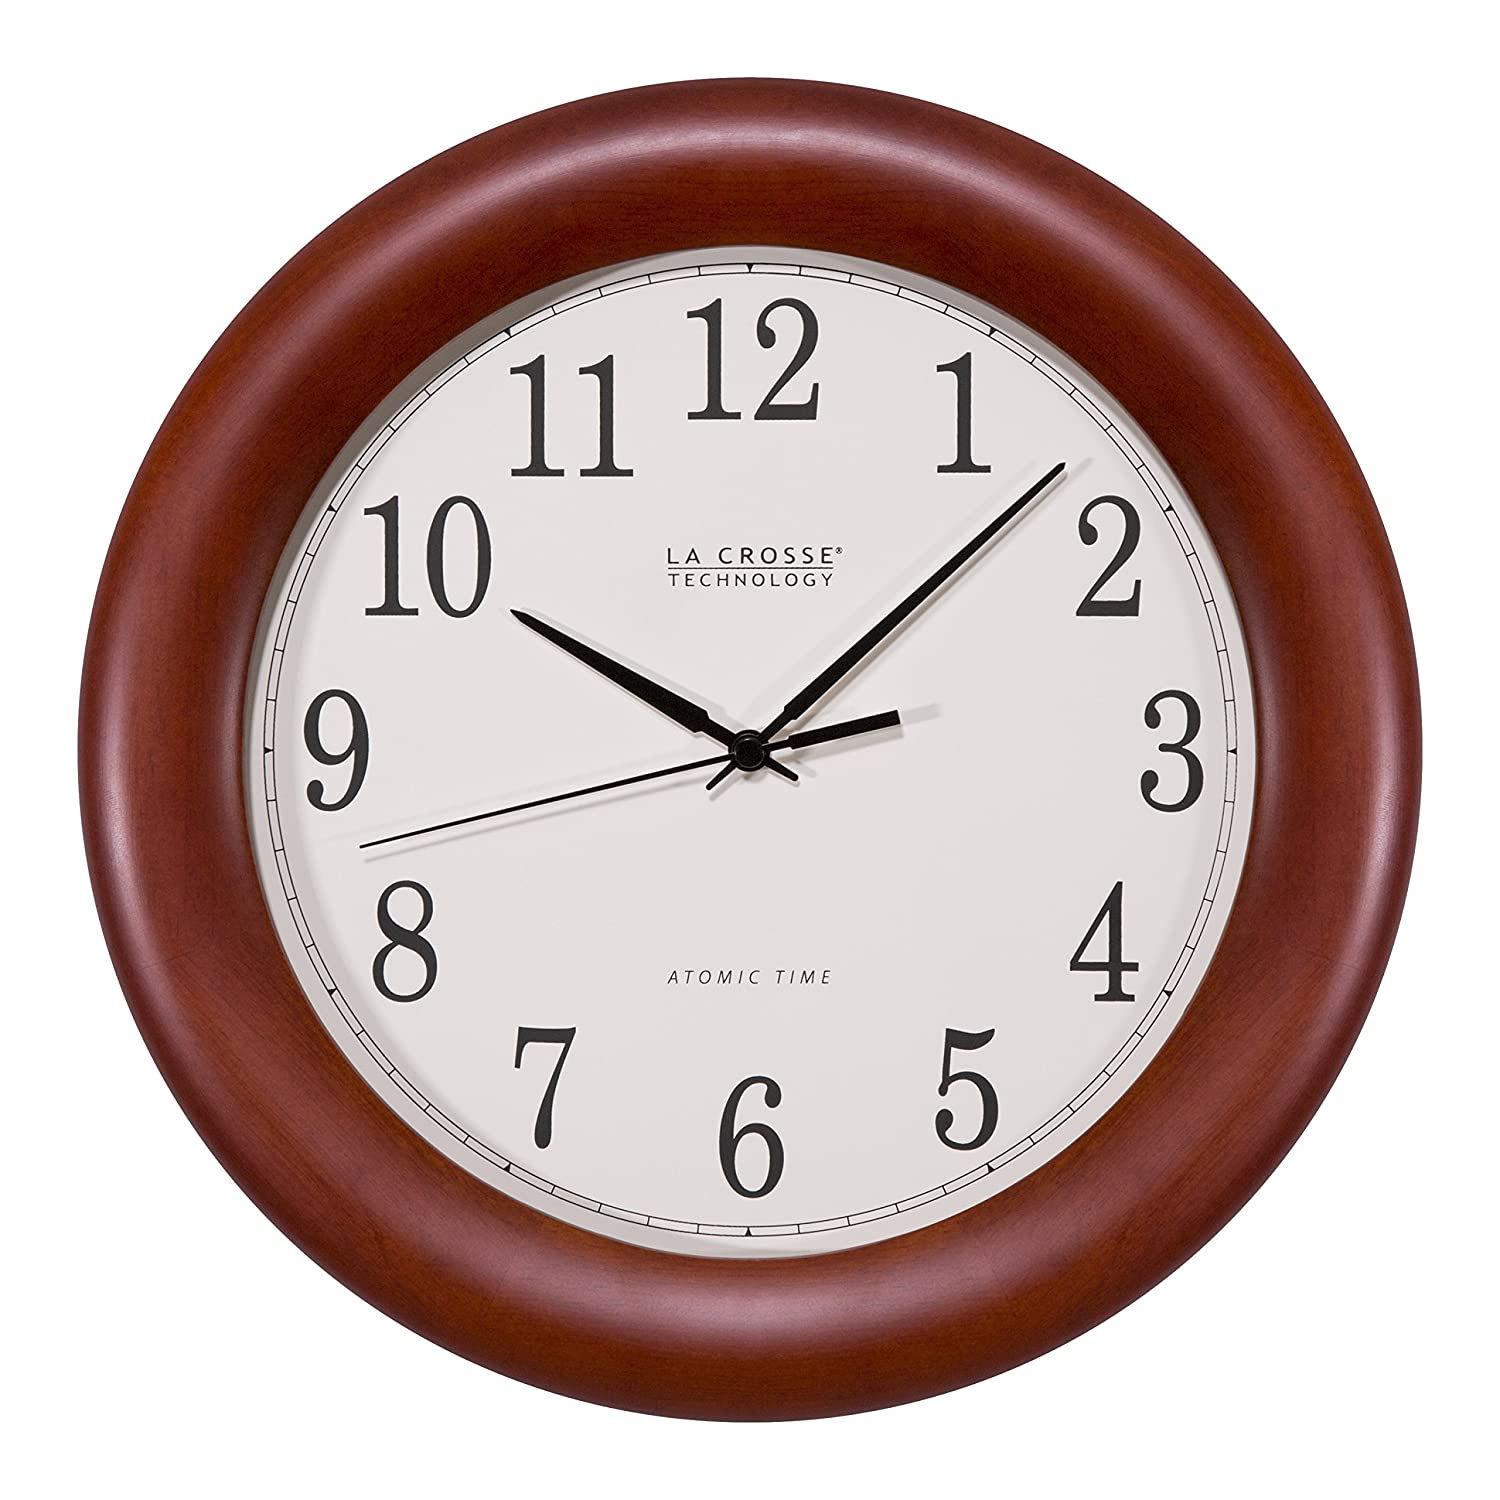 La Crosse Technology WT-3122A 12.5 Inch Cherry Wood Atomic Analog Clock (2-(Pack))